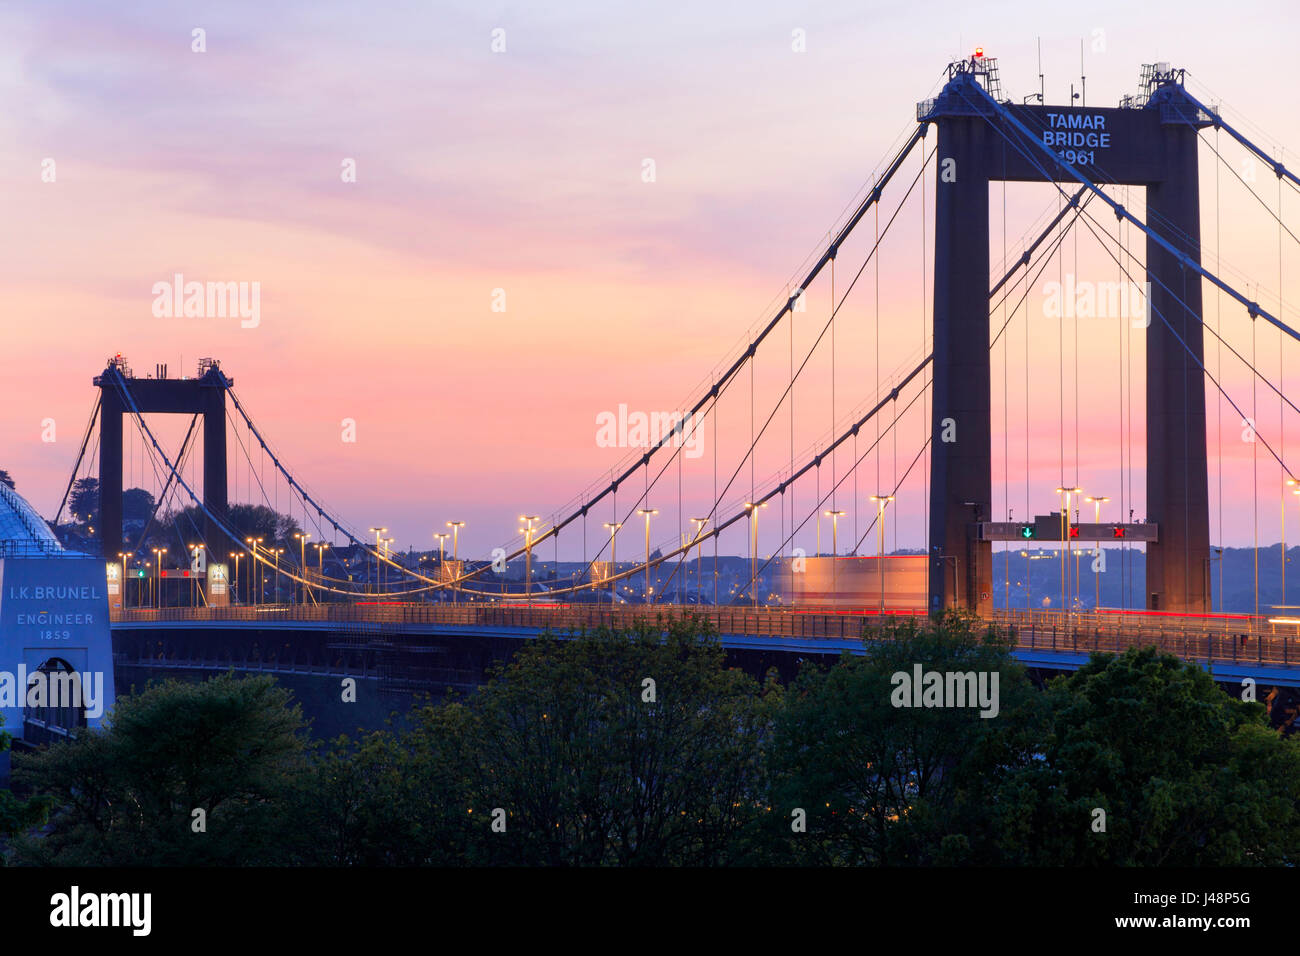 evening-shot-of-the-tamar-road-bridge-linking-devon-and-cornwall-taken-J48P5G.jpg